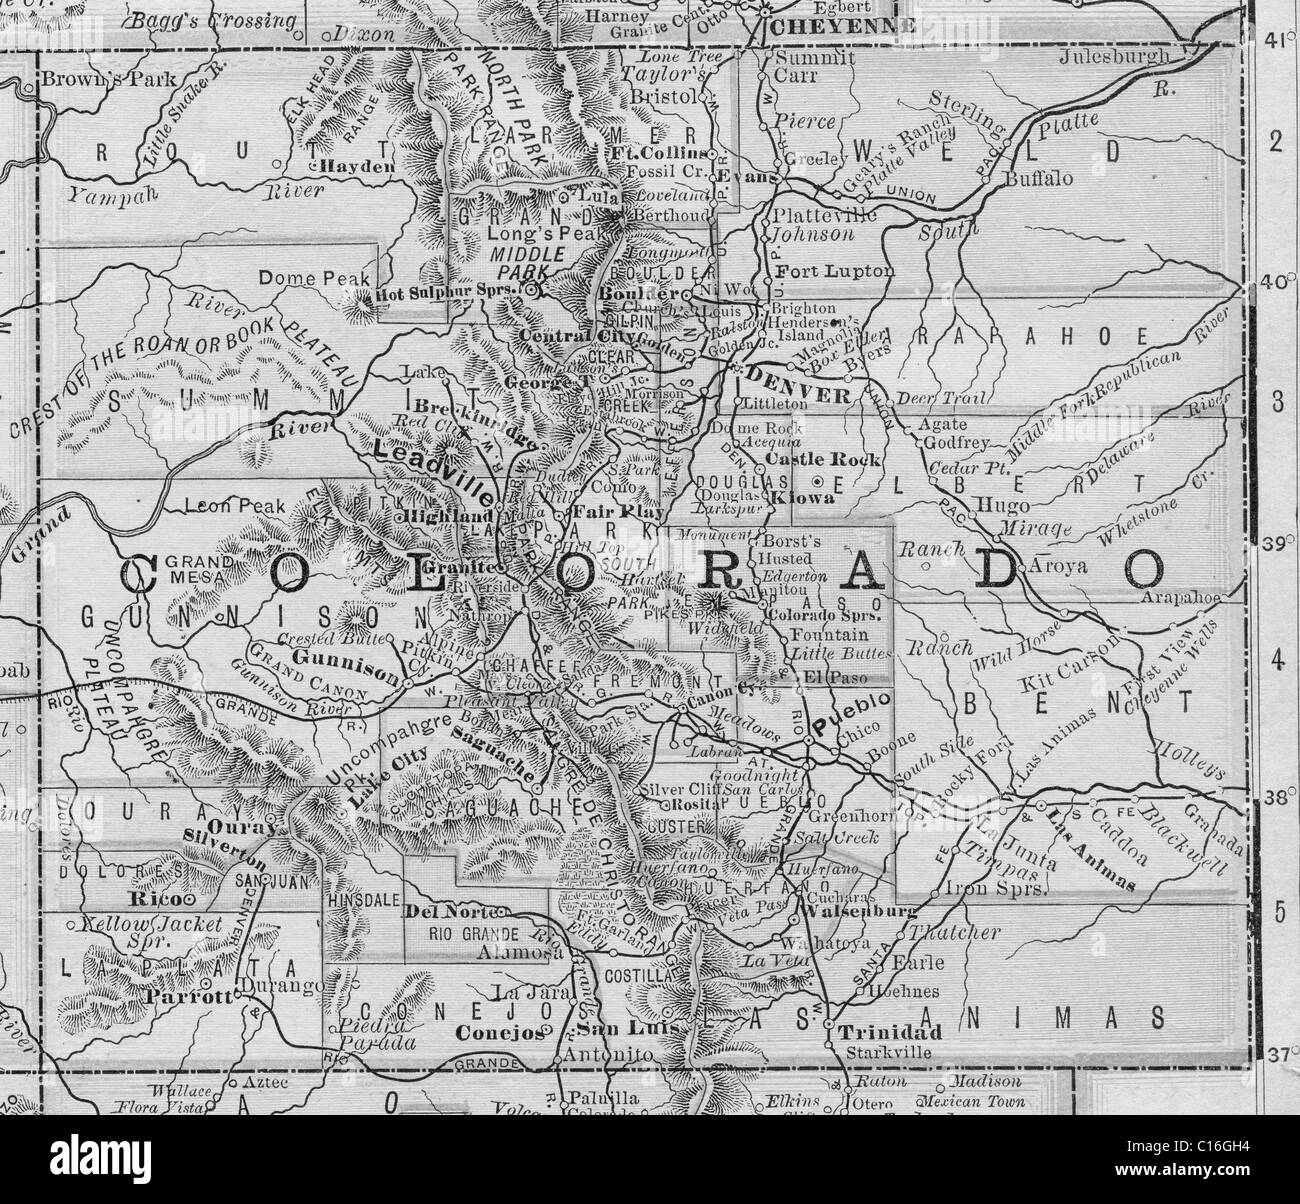 Old Map Of Colorado From Original Geography Textbook 1884 Stock Photo Alamy